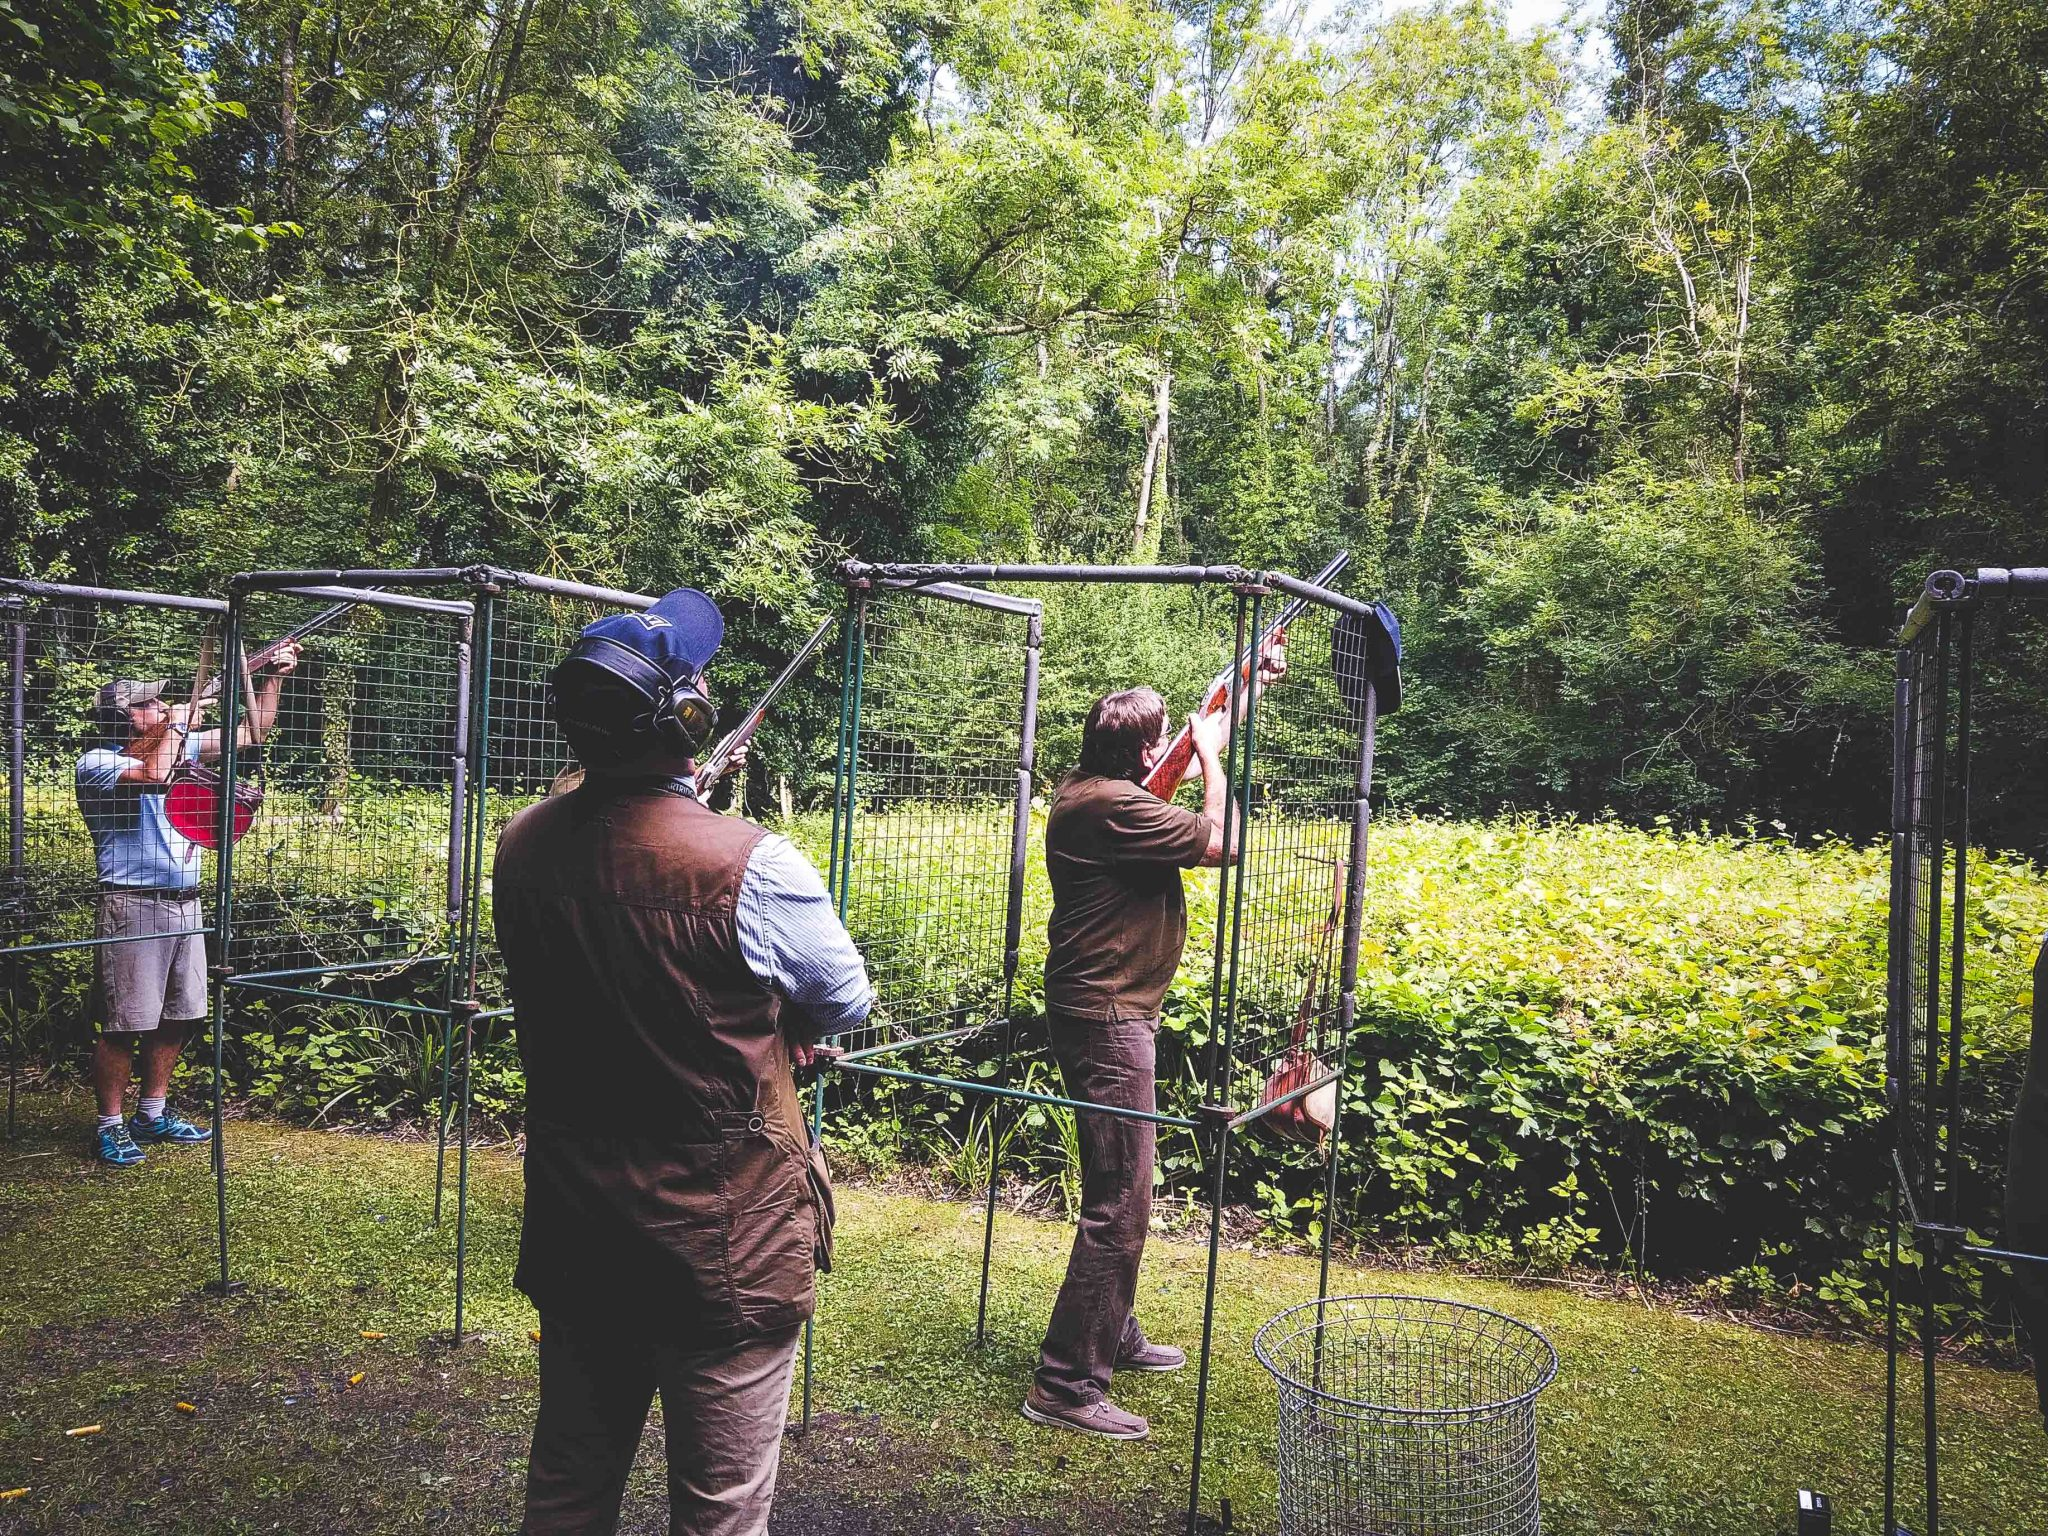 Charity shoots at Lady's Wood Shooting School